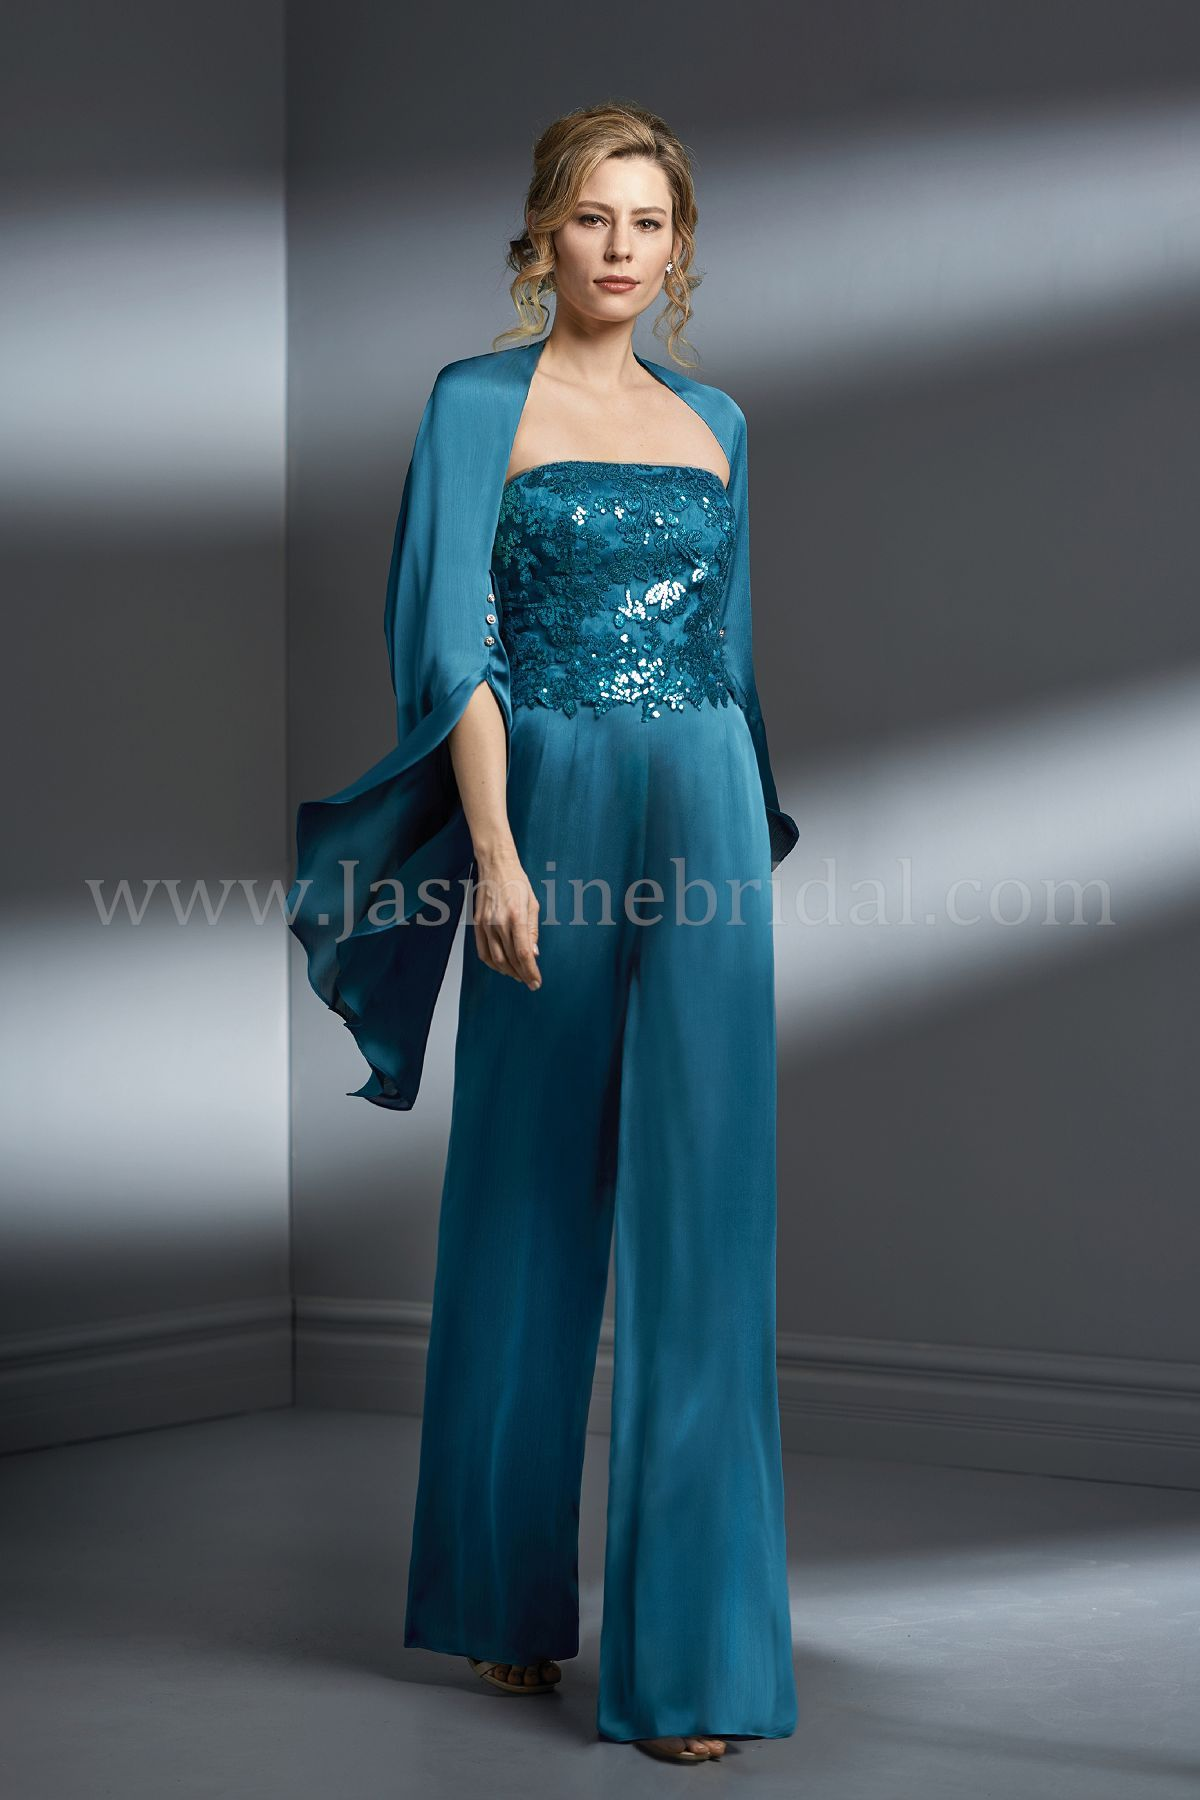 Jasmine Bridal   Jade Couture Style K198067 in Teal   Audrey Sequin ...